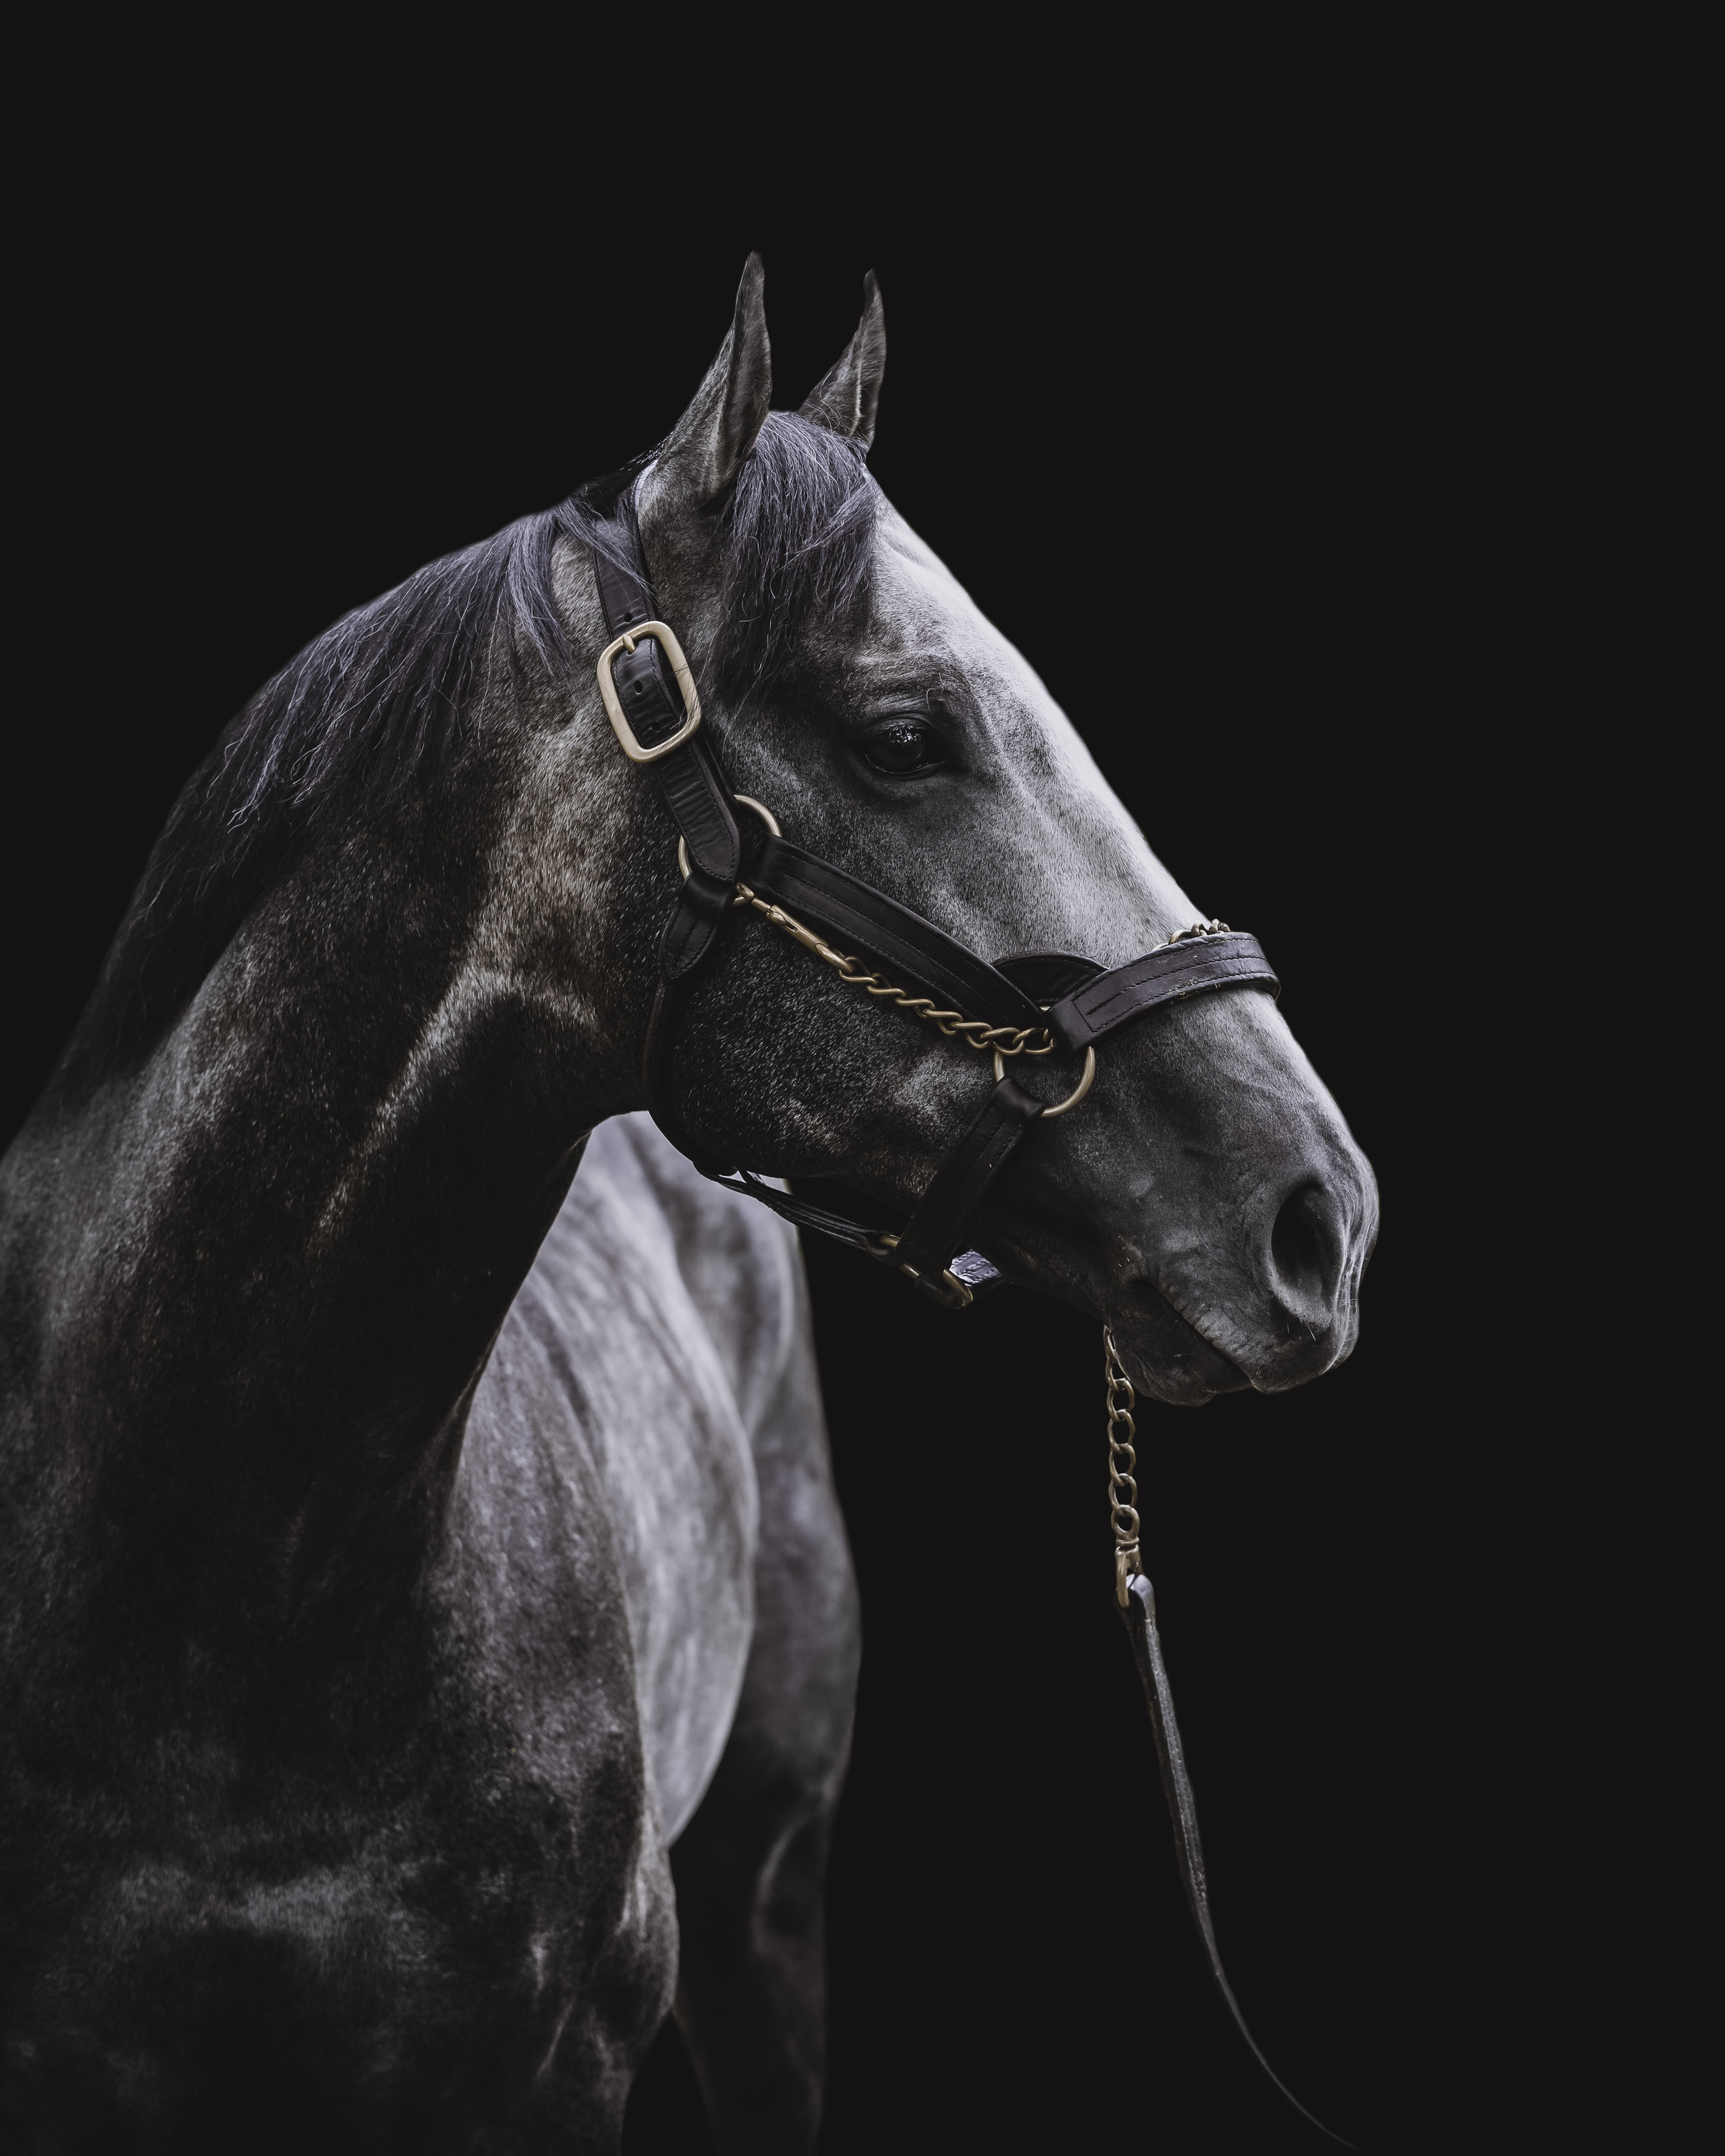 Arrogate - Arrogate, by Unbridled's Song and out of Bubbler, stands at Juddmonte Farms.Arrogate won the Travers Stakes in a track record, the Breeders' Cup Classic, the Pegasus World Cup in a new track record and the Dubai World Cup. he was named World's Best Racehorse of 2016.despite having only four stakes race wins, the large purses for these wins made him the all-time leading money earner in North America.so basically he won a lot of money and he's a big freaking deal.